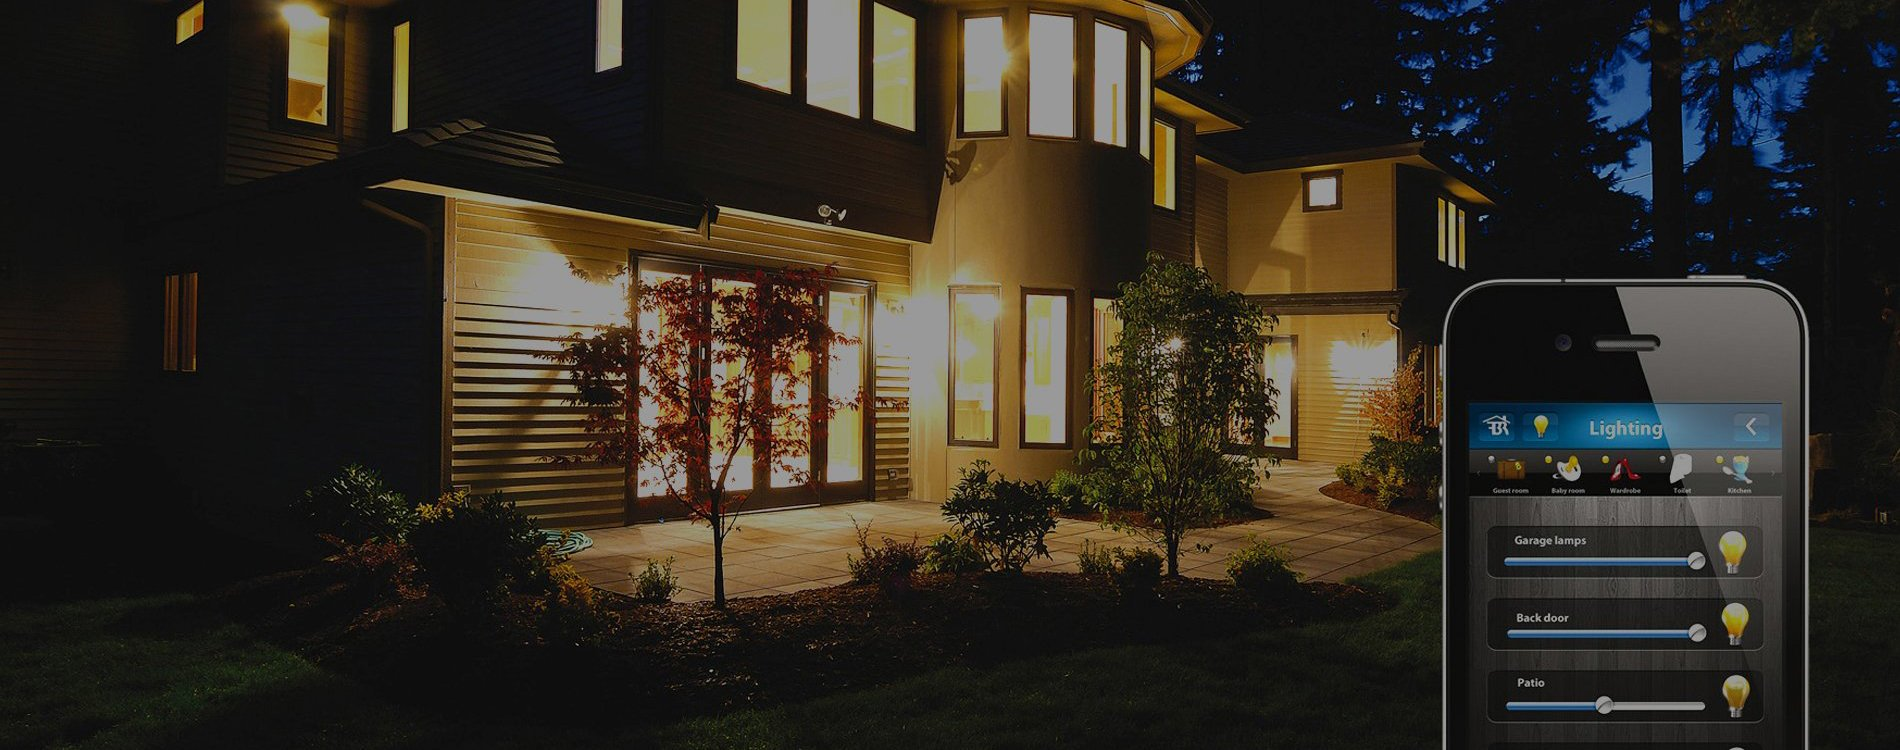 Home Automation And Smart Home Solutions Liverton Automation